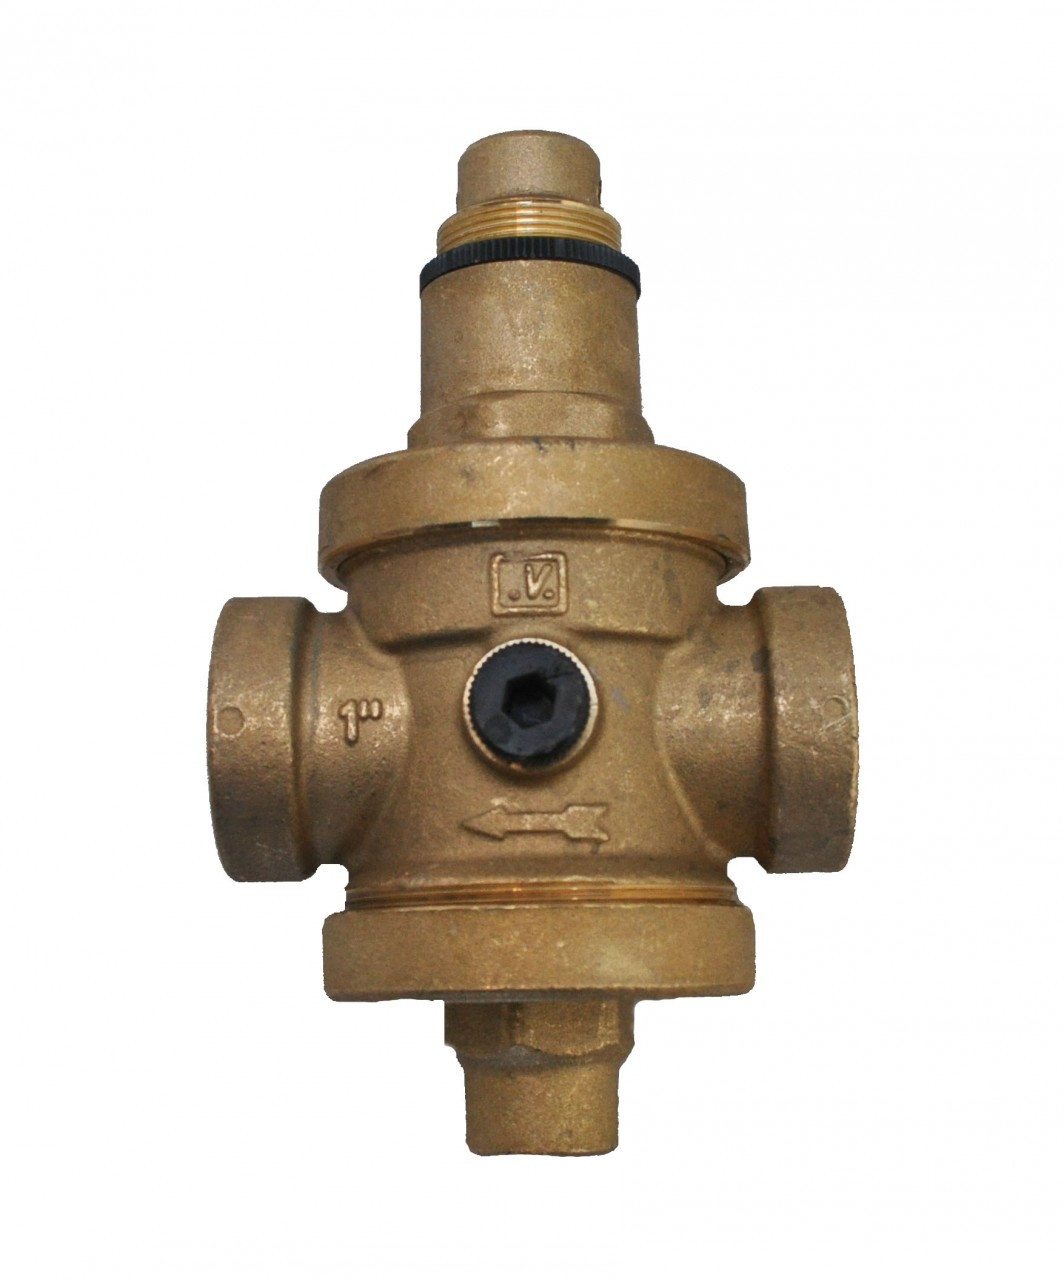 Brass pressure reducing valve FxF